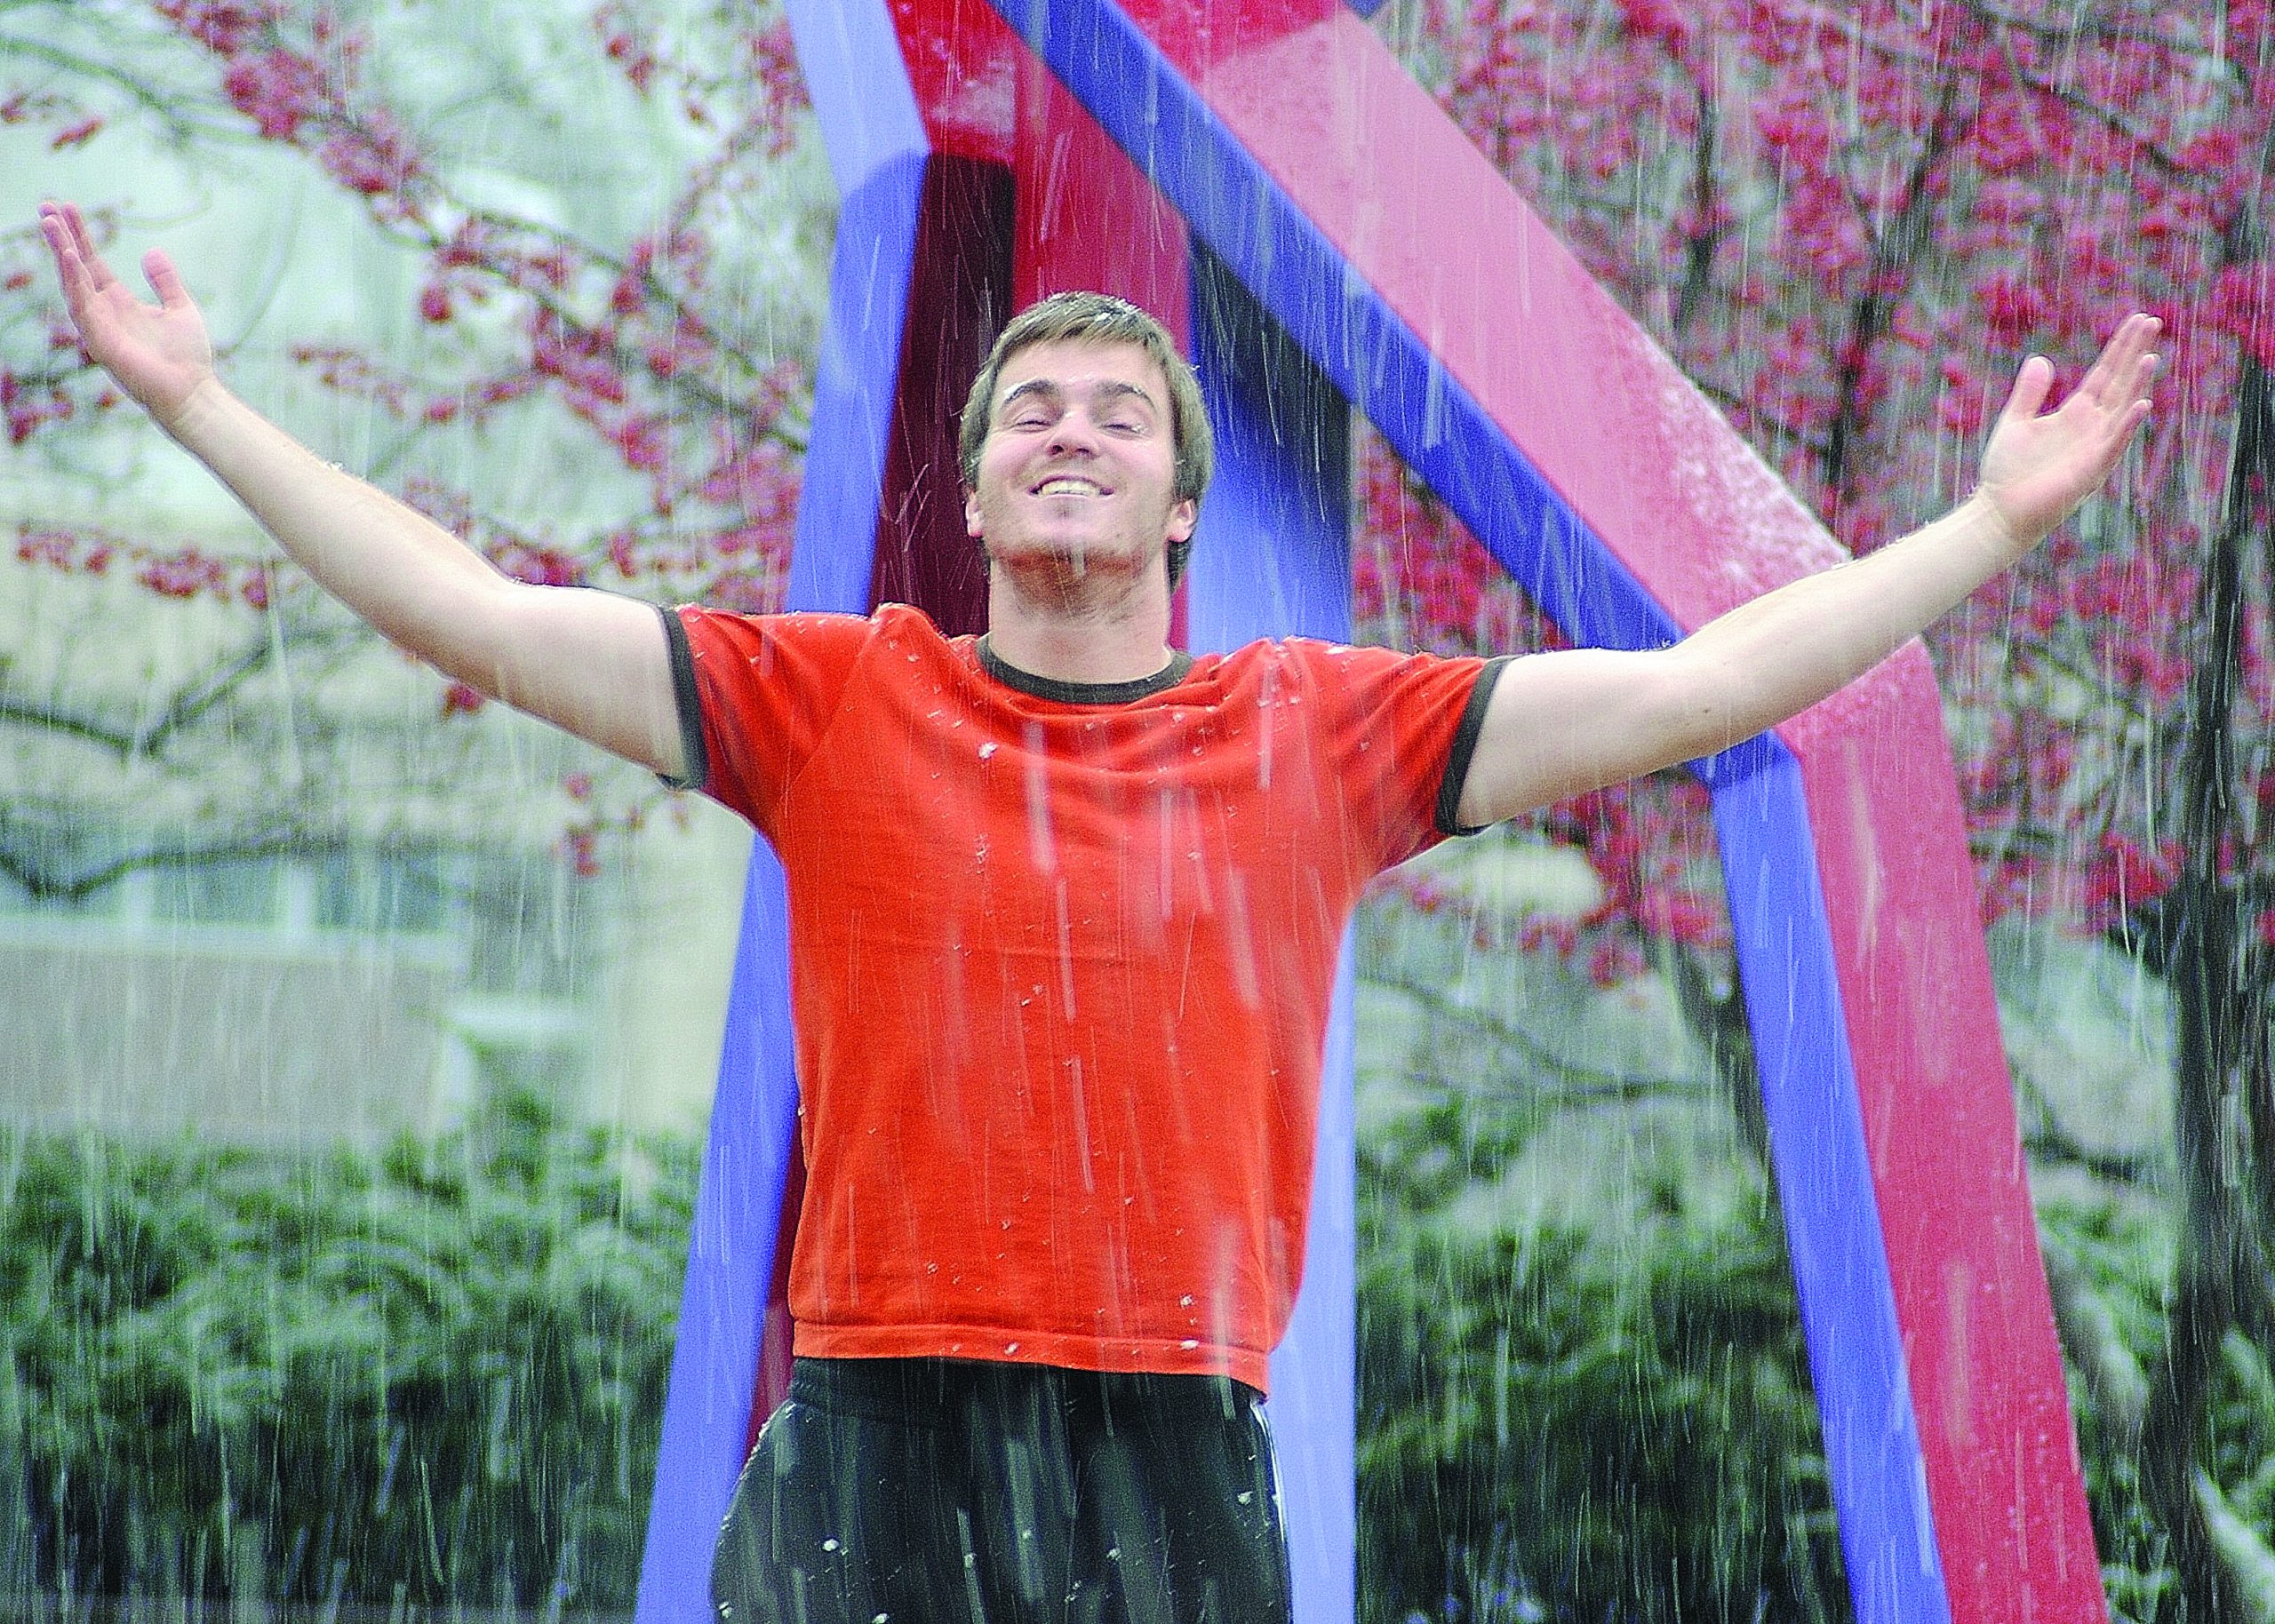 A student enjoys a rainstorm in front of a sculpture on campus